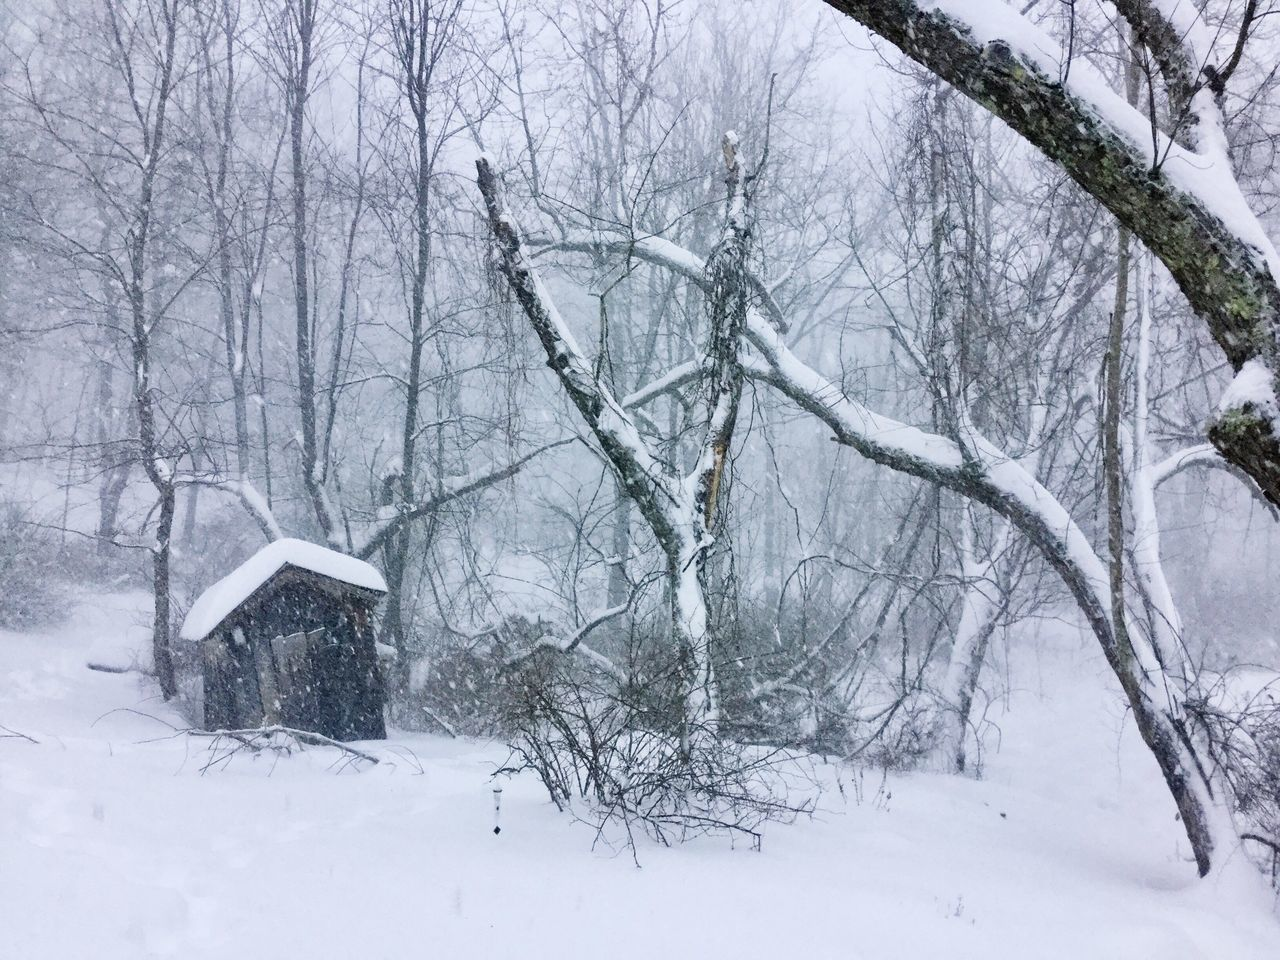 Cold Temperature Snow ❄ Bare Tree Weather Nature Winter No People Day Outdoors Smokehouse